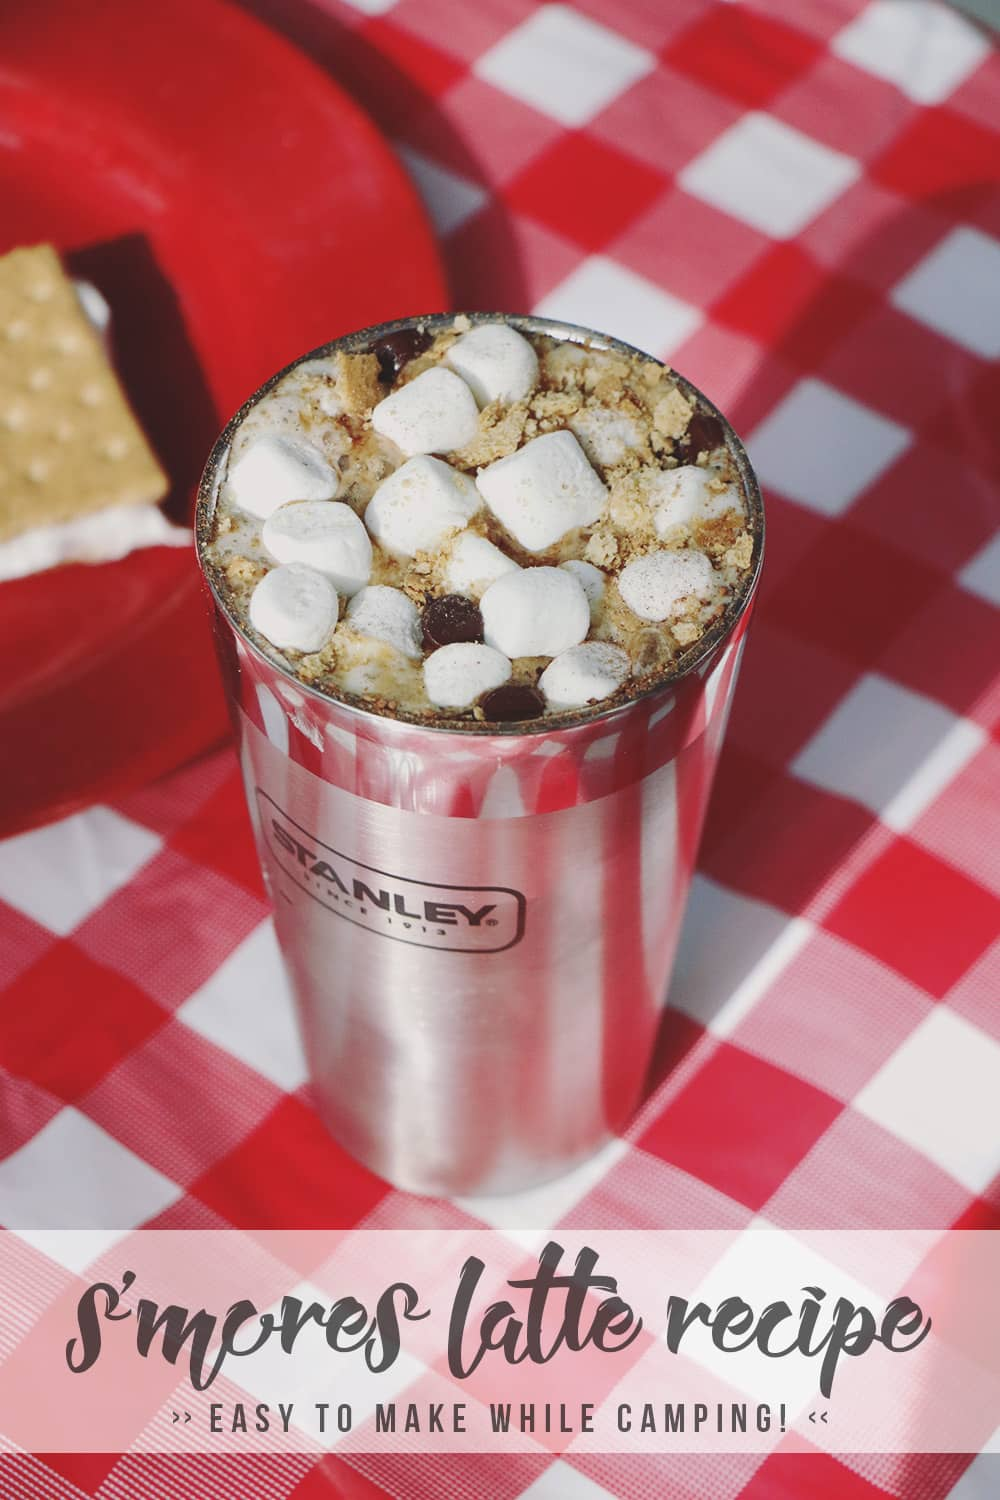 If you're in need of the perfect drink whether you're enjoying your campsite or at home wishing you were outdoors, this S'mores Latte recipe is it!